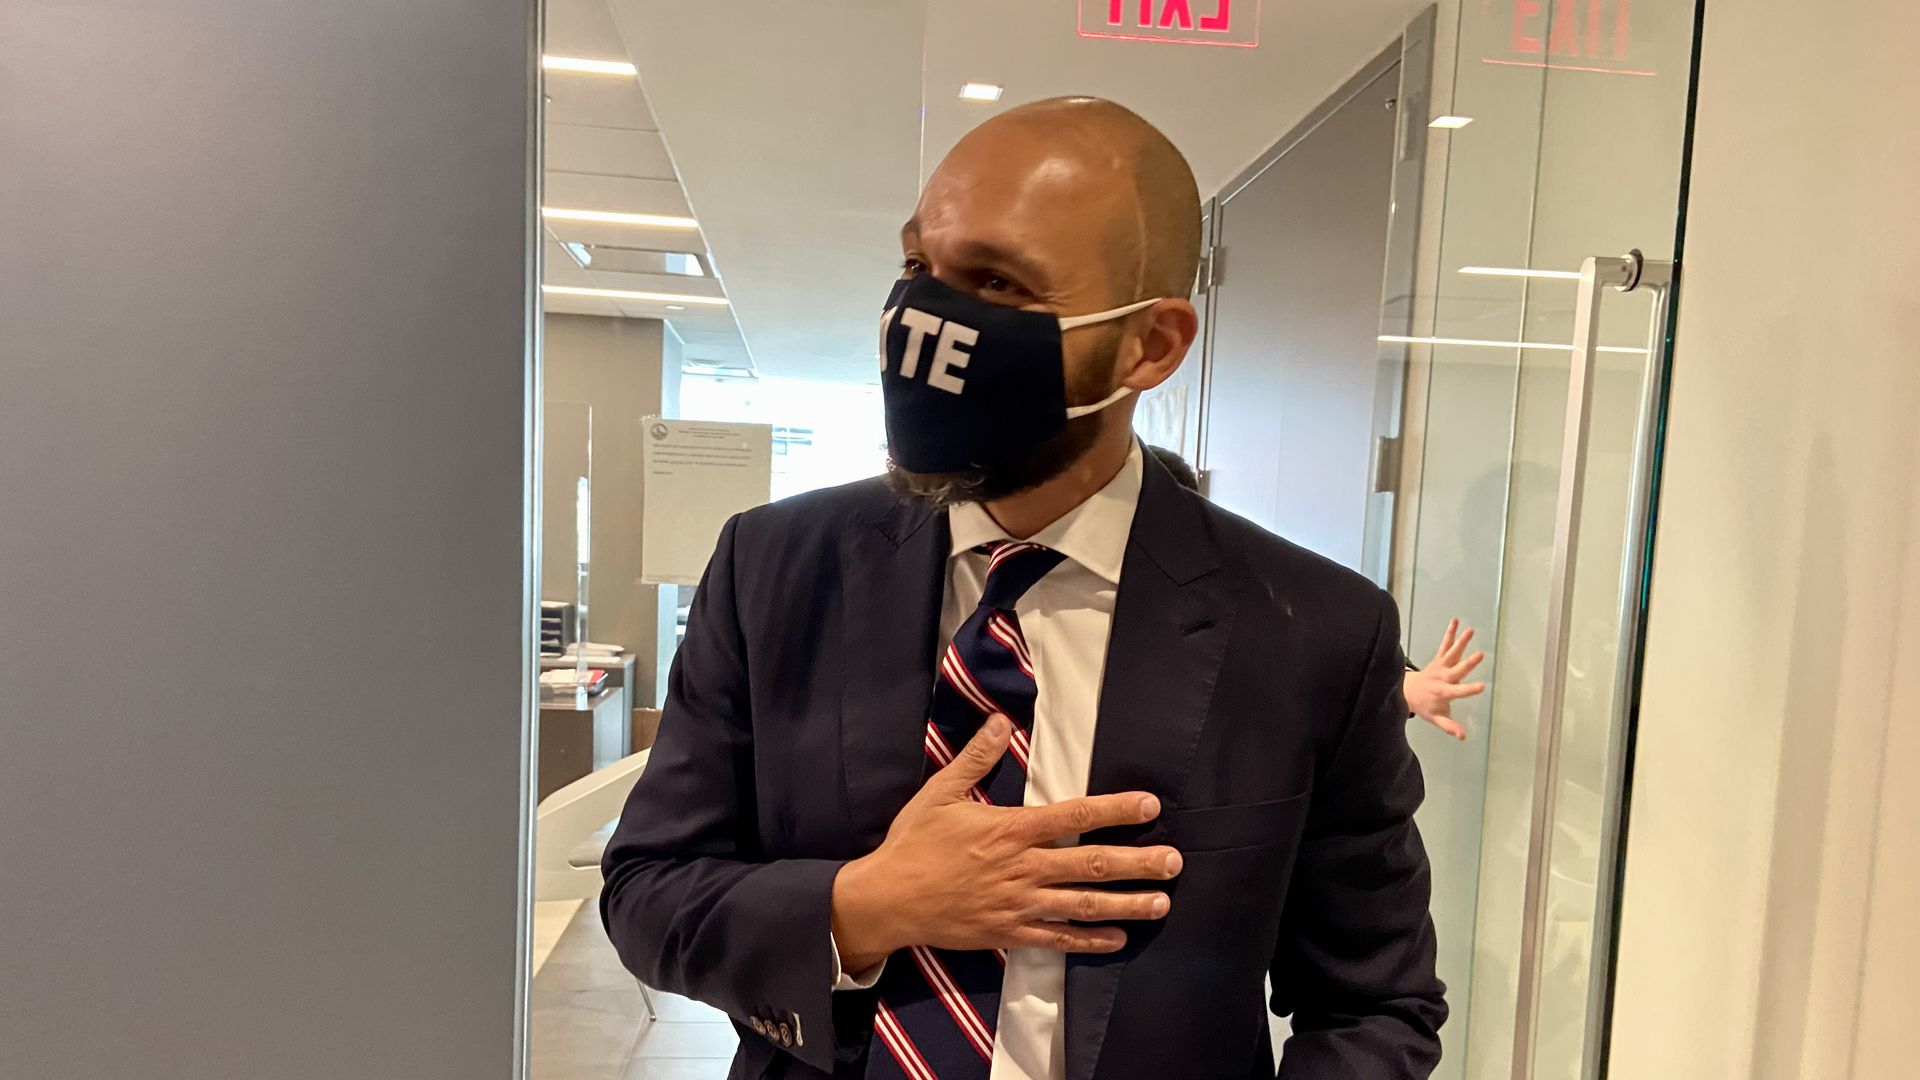 """Robert White exits the Office of Campaign Finance after filing to run for mayor, wearing a """"vote"""" face mask."""